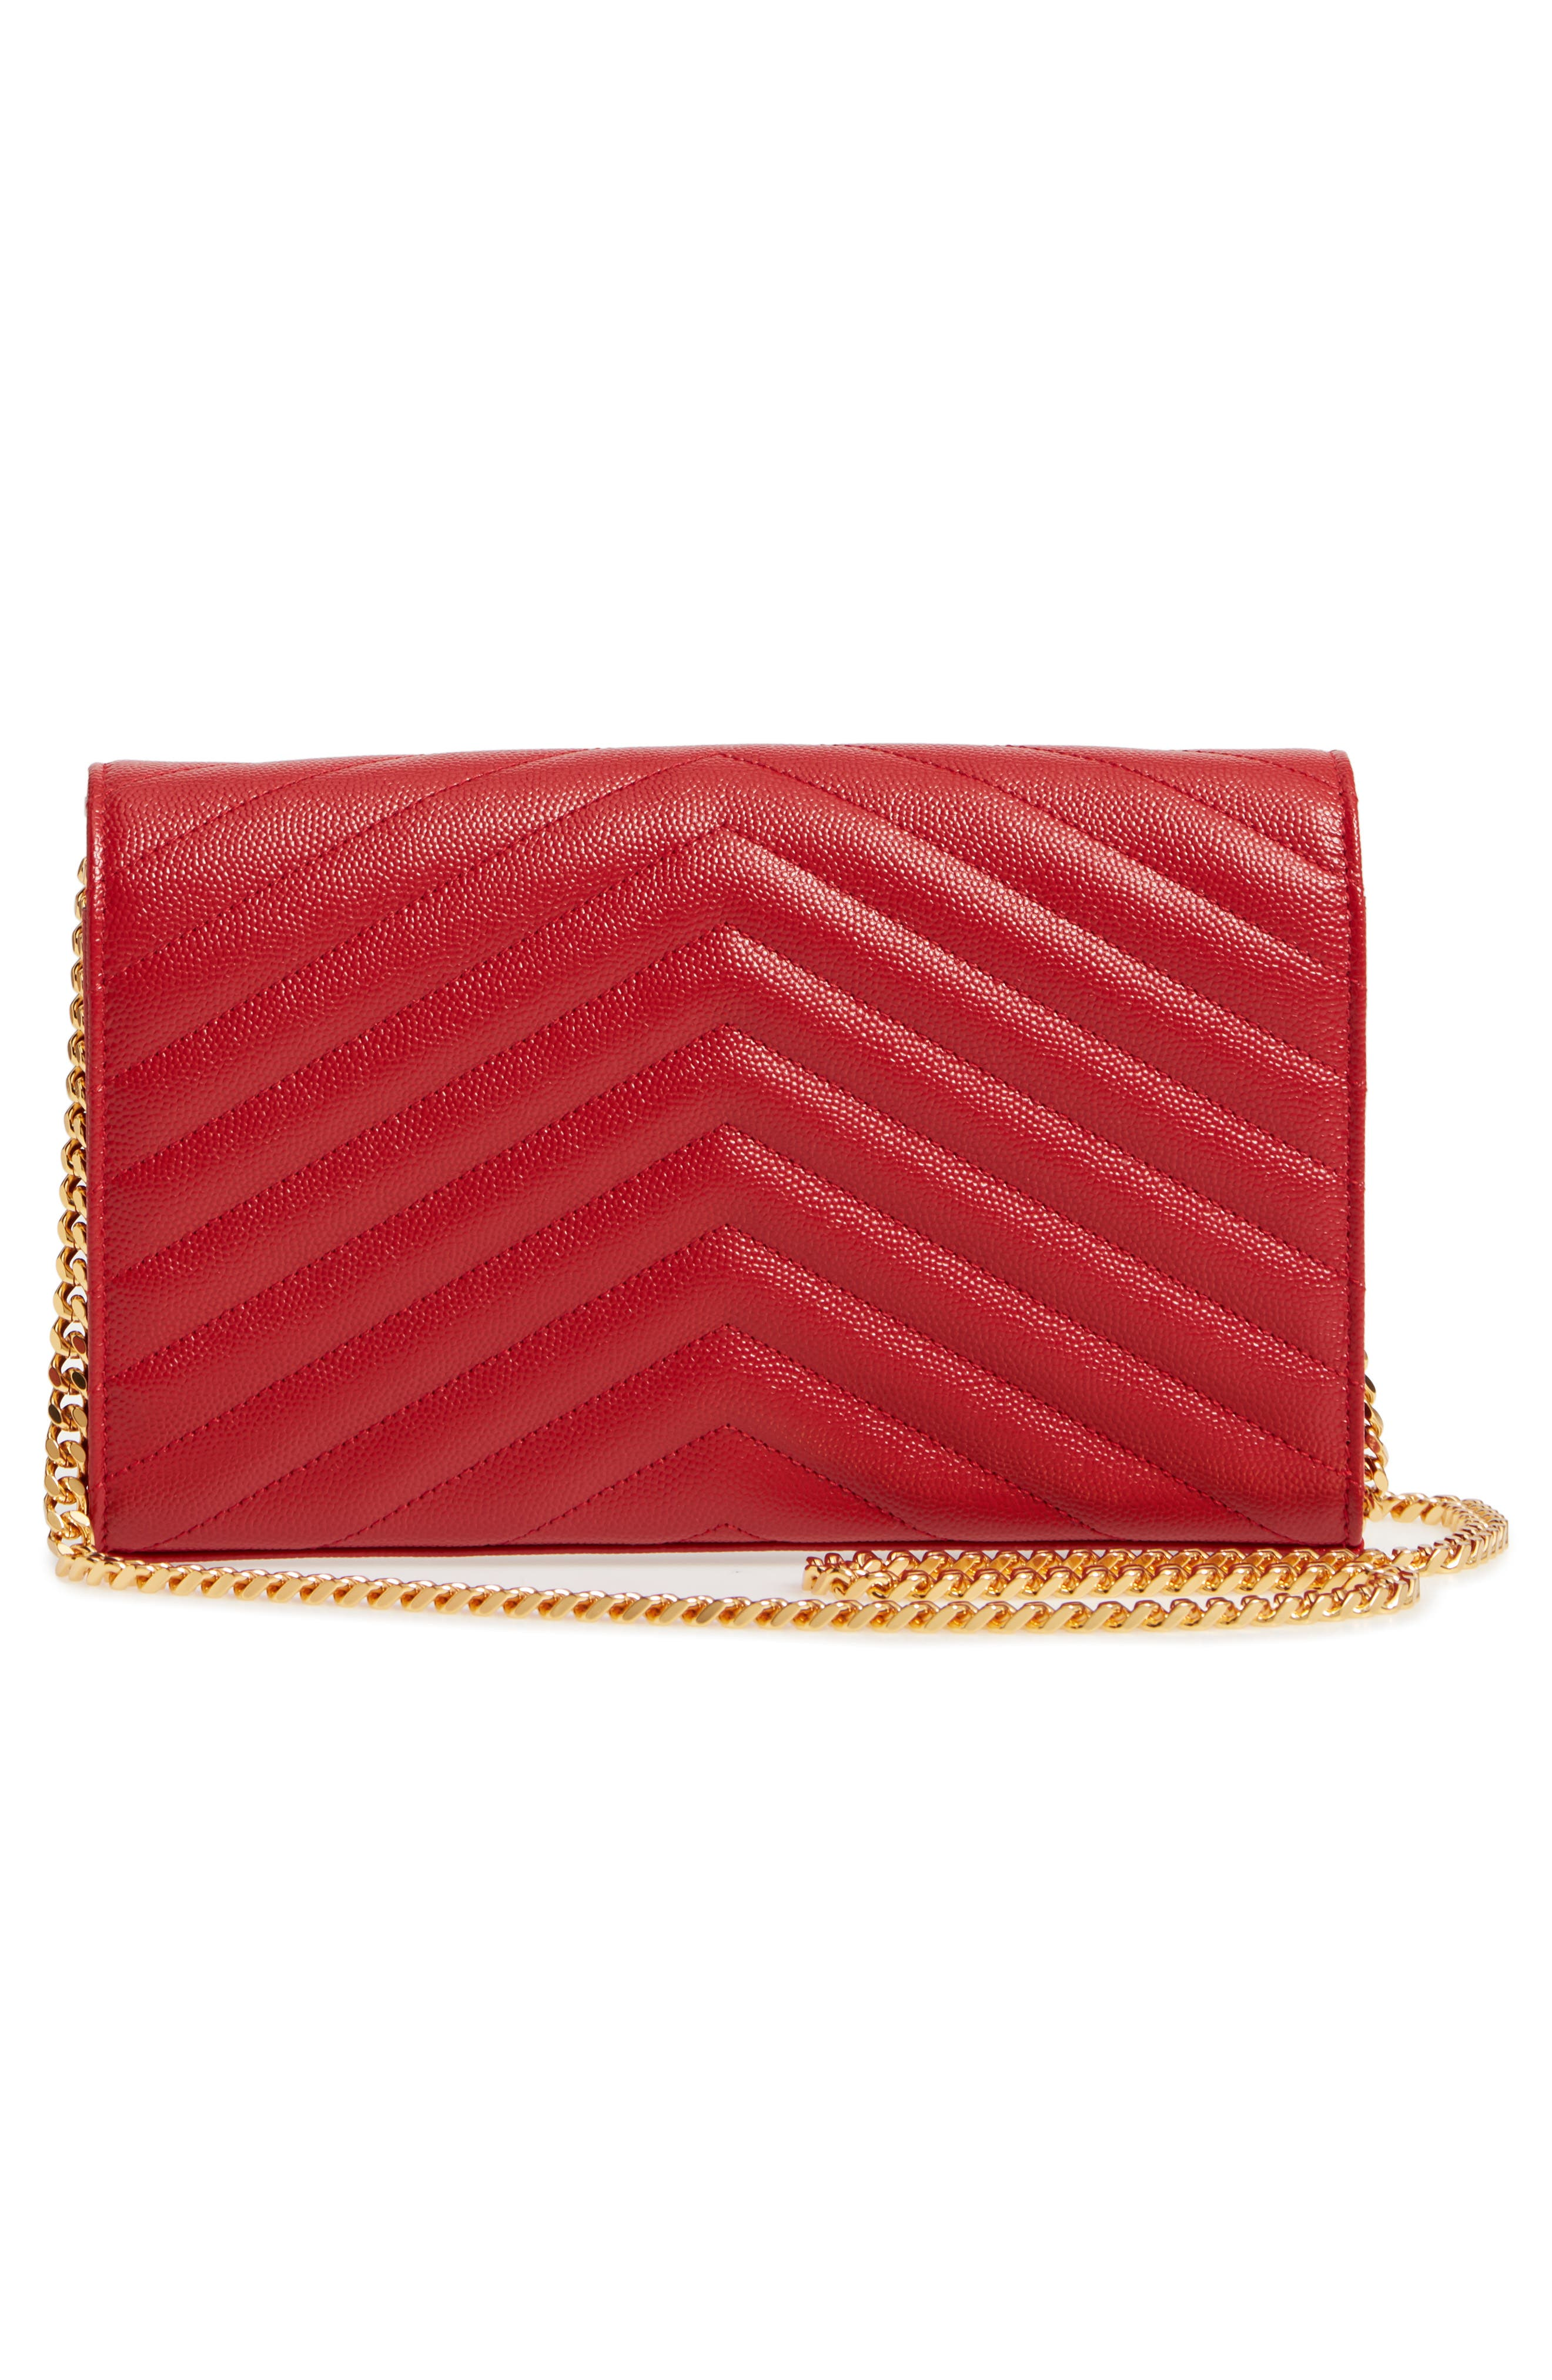 'Large Monogram' Quilted Leather Wallet on a Chain,                             Alternate thumbnail 3, color,                             ROUGE EROS